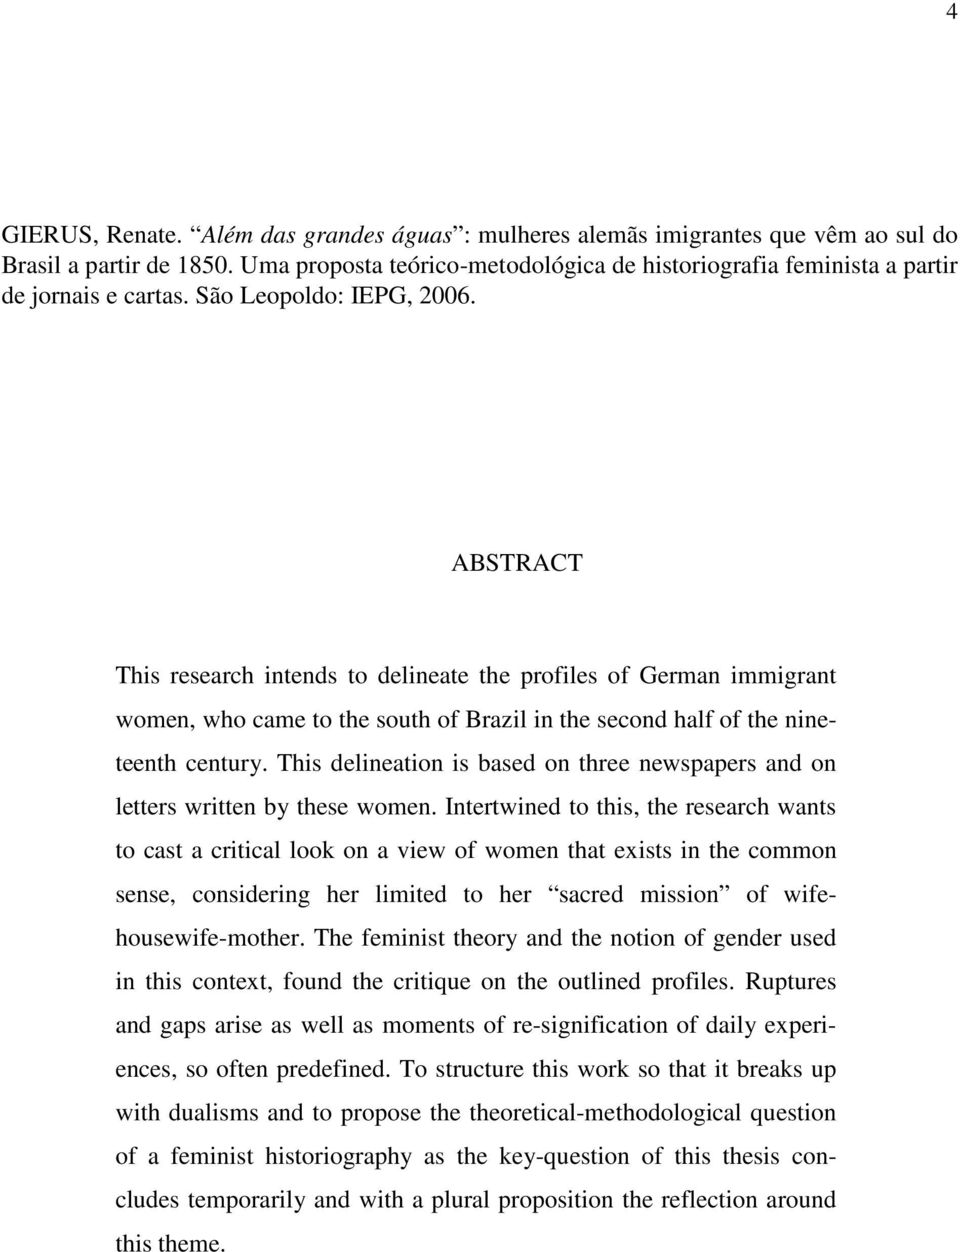 ABSTRACT This research intends to delineate the profiles of German immigrant women, who came to the south of Brazil in the second half of the nineteenth century.